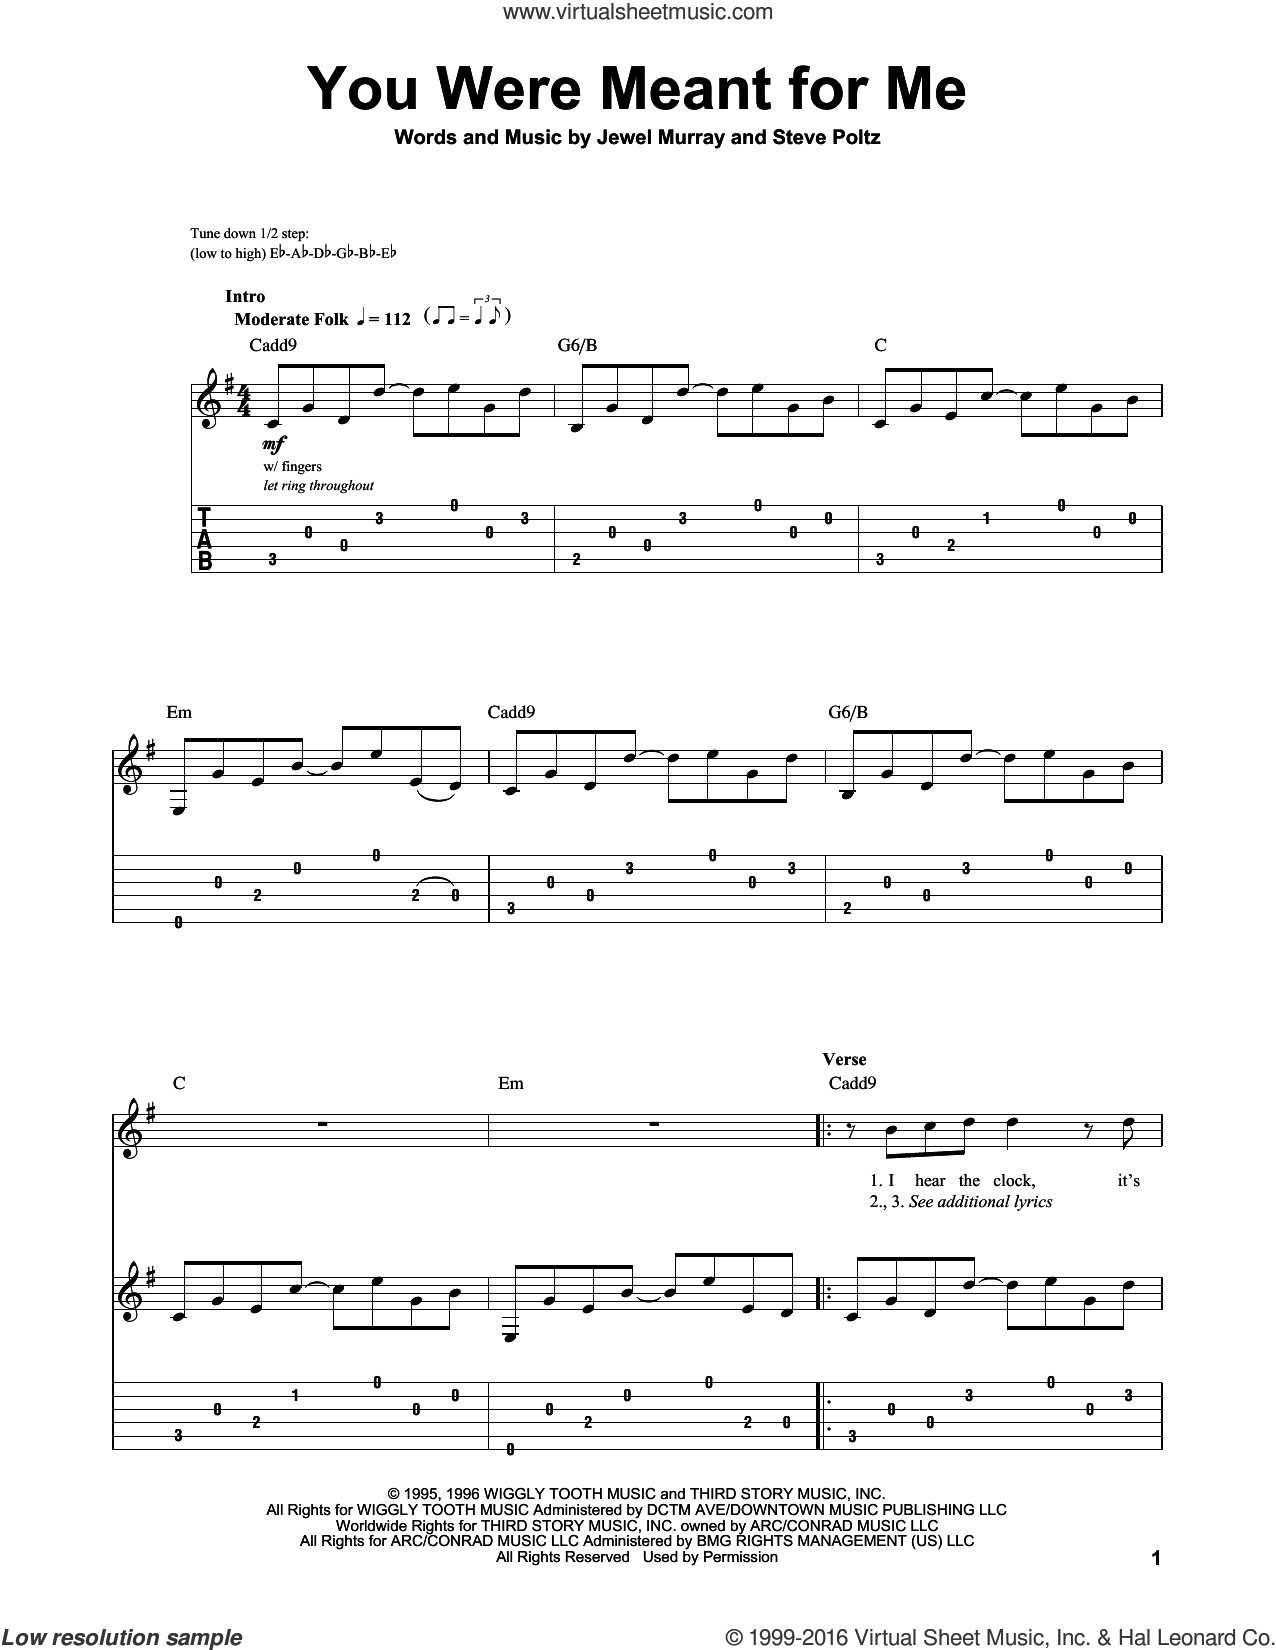 You Were Meant For Me sheet music for guitar (tablature, play-along) by Steve Poltz, Jewel and Jewel Kilcher. Score Image Preview.